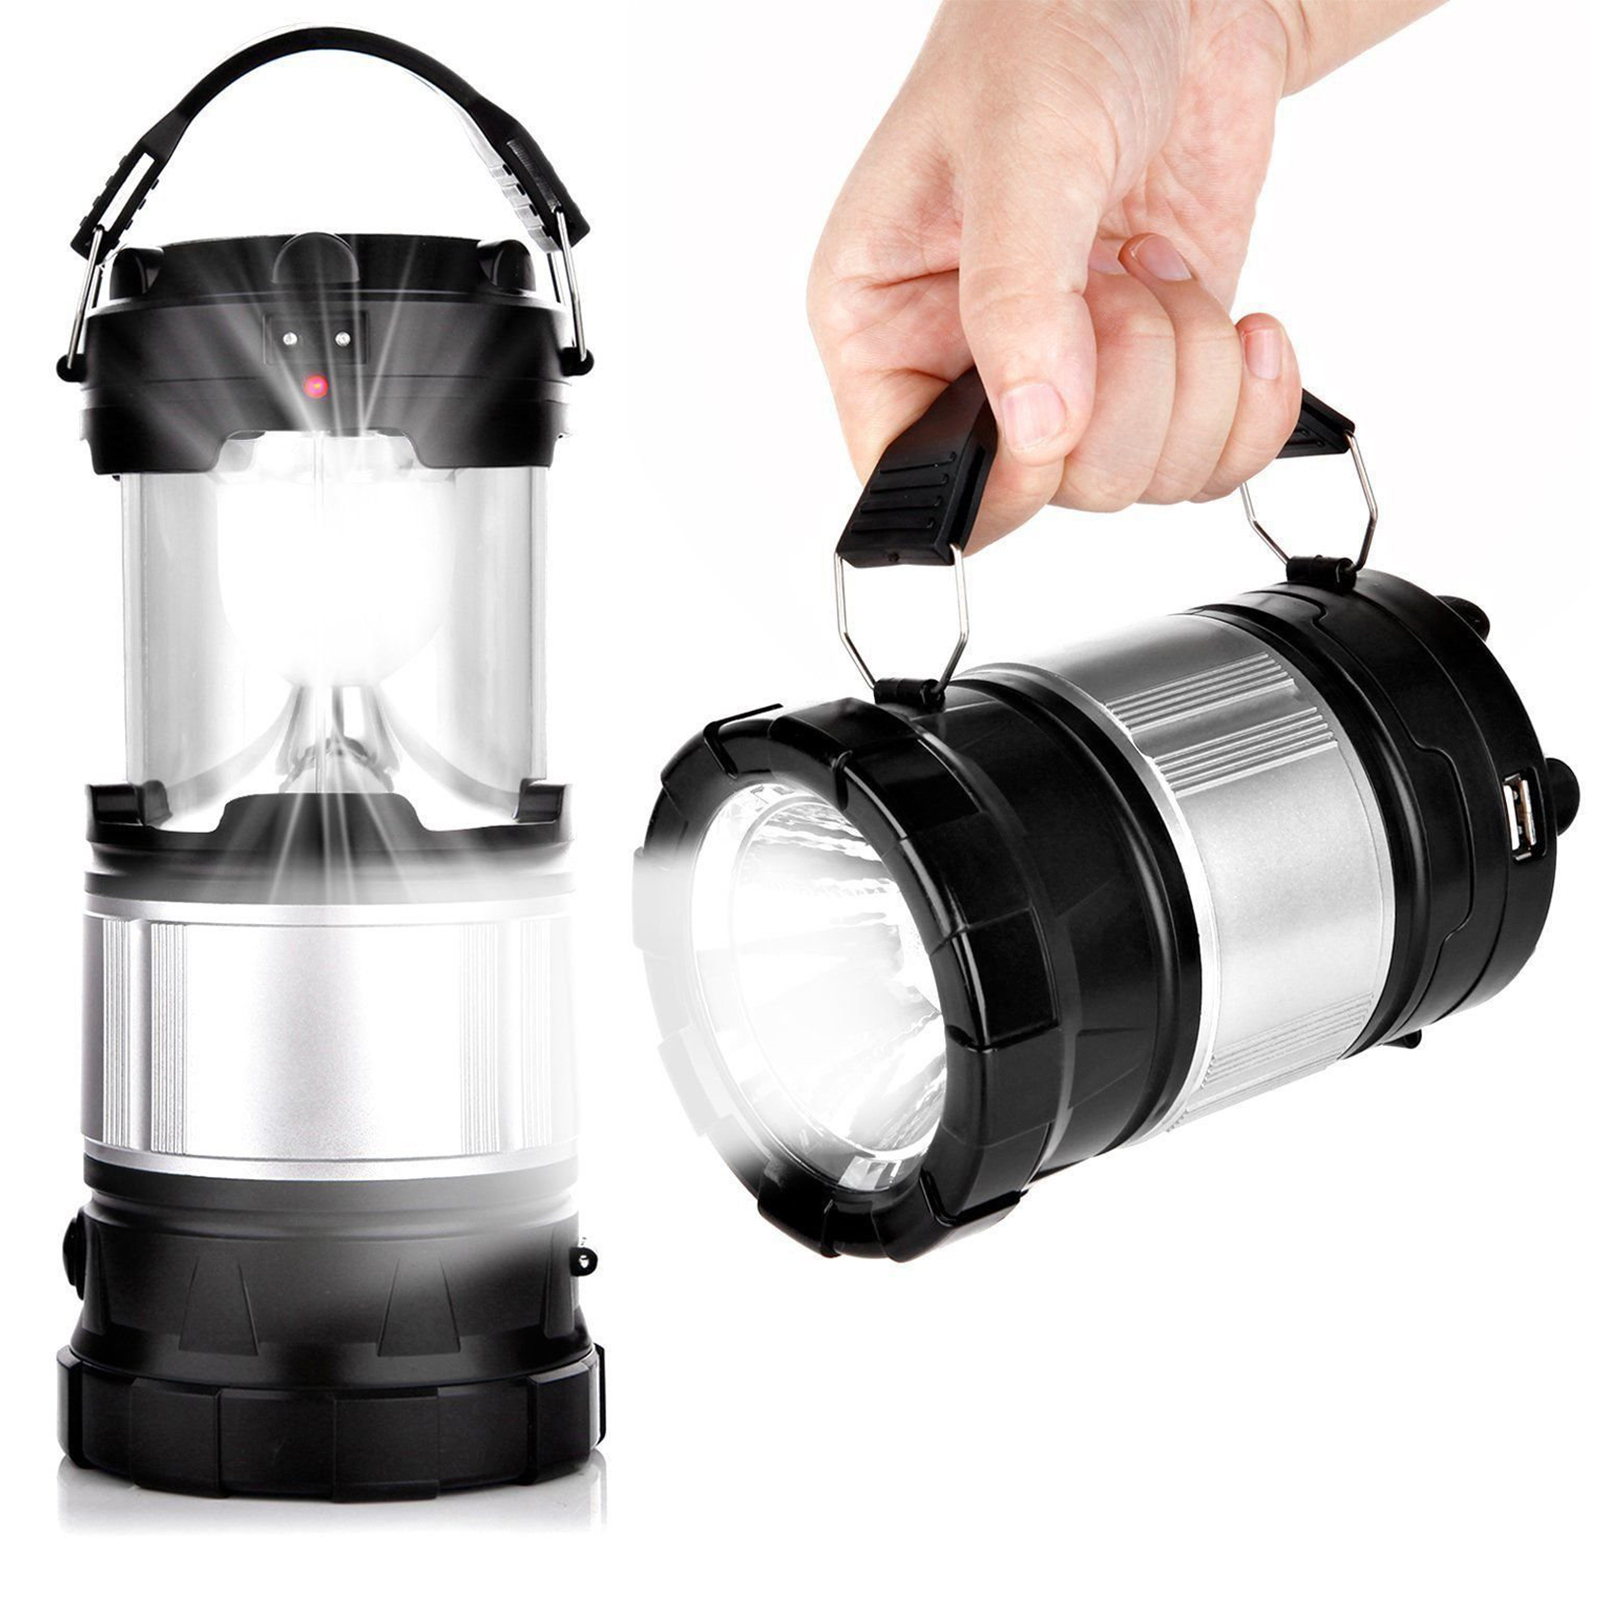 EEEKit Solar Camping Lantern, 2-in-1 Rechargeable Handheld Flashlights, Collapsible LED Lantern Camping Gear Equipment for Outdoor Hiking, Camping Supplies, Emergencies, Hurricanes, Outages